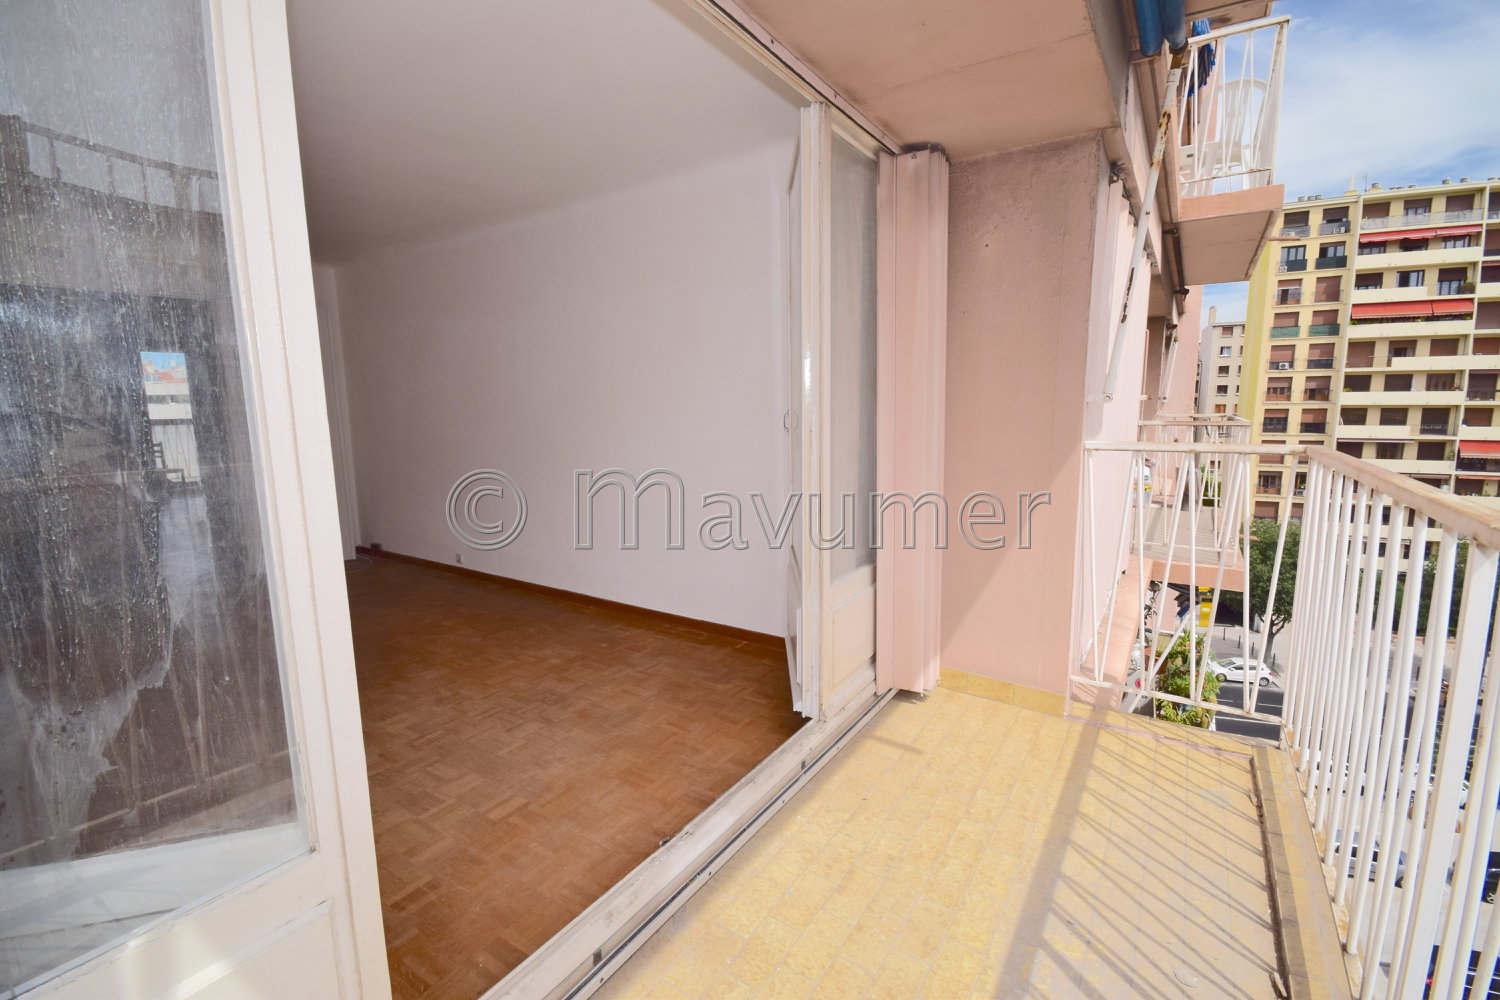 APPARTEMENT T4 SAKAKINI MARSEILLE 13005